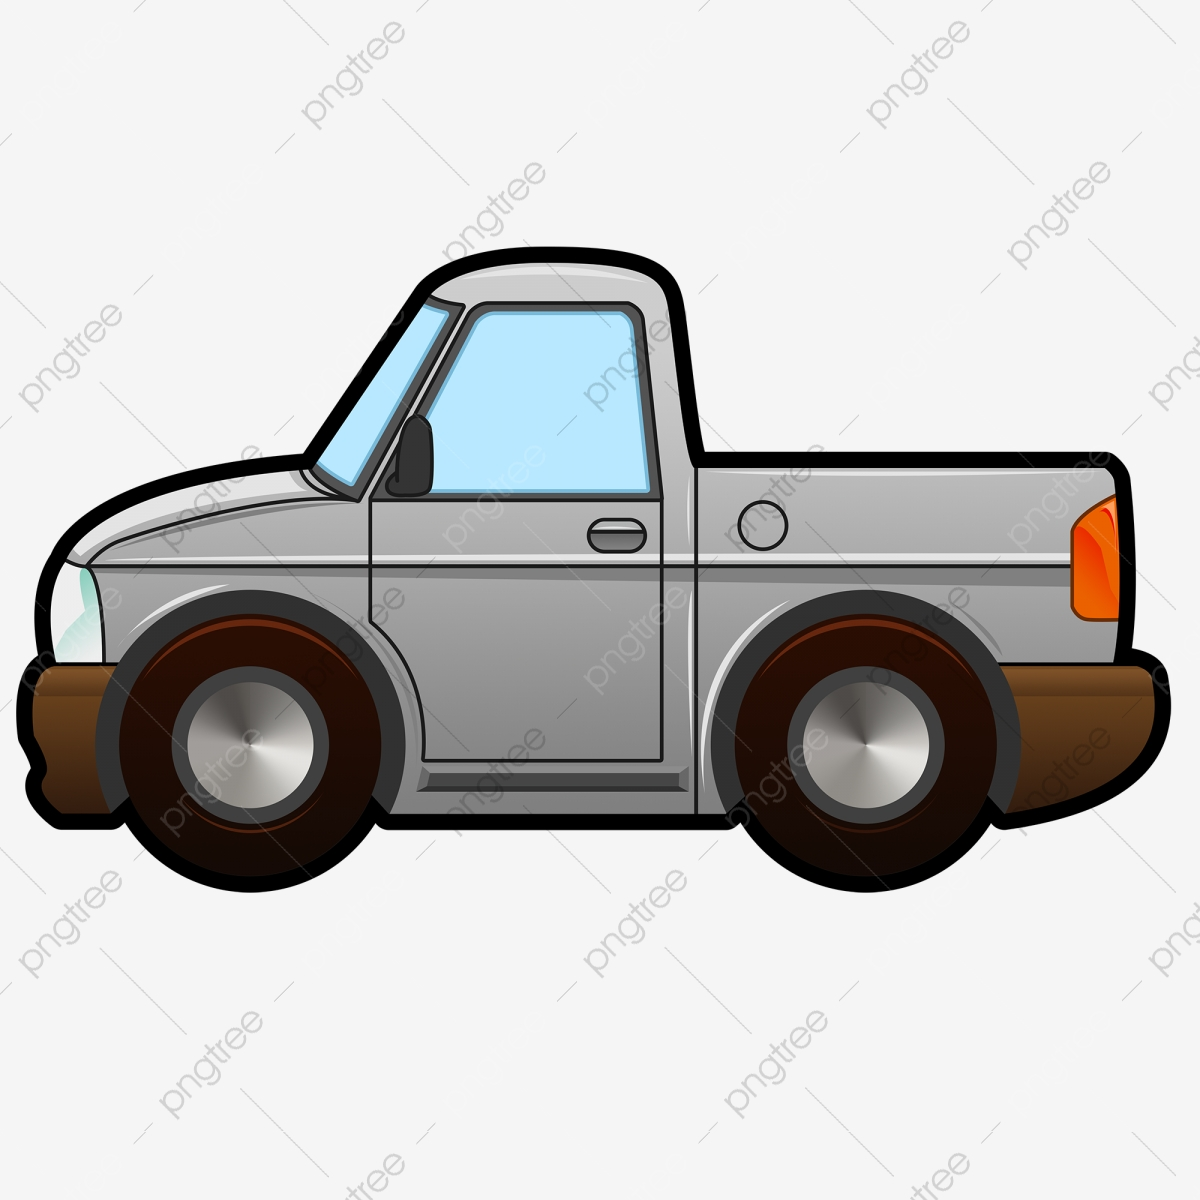 Cartoon Pickup Truck Can Be Used For Commercial Materials Cartoon Pickup Truck Car Cartoon Png Transparent Clipart Image And Psd File For Free Download It's tree trunks (i think the episode she was in was even called tree trunks) from season 1 of adventure time with finn and jake on cartoon network. https pngtree com freepng cartoon pickup truck can be used for commercial materials 4371869 html